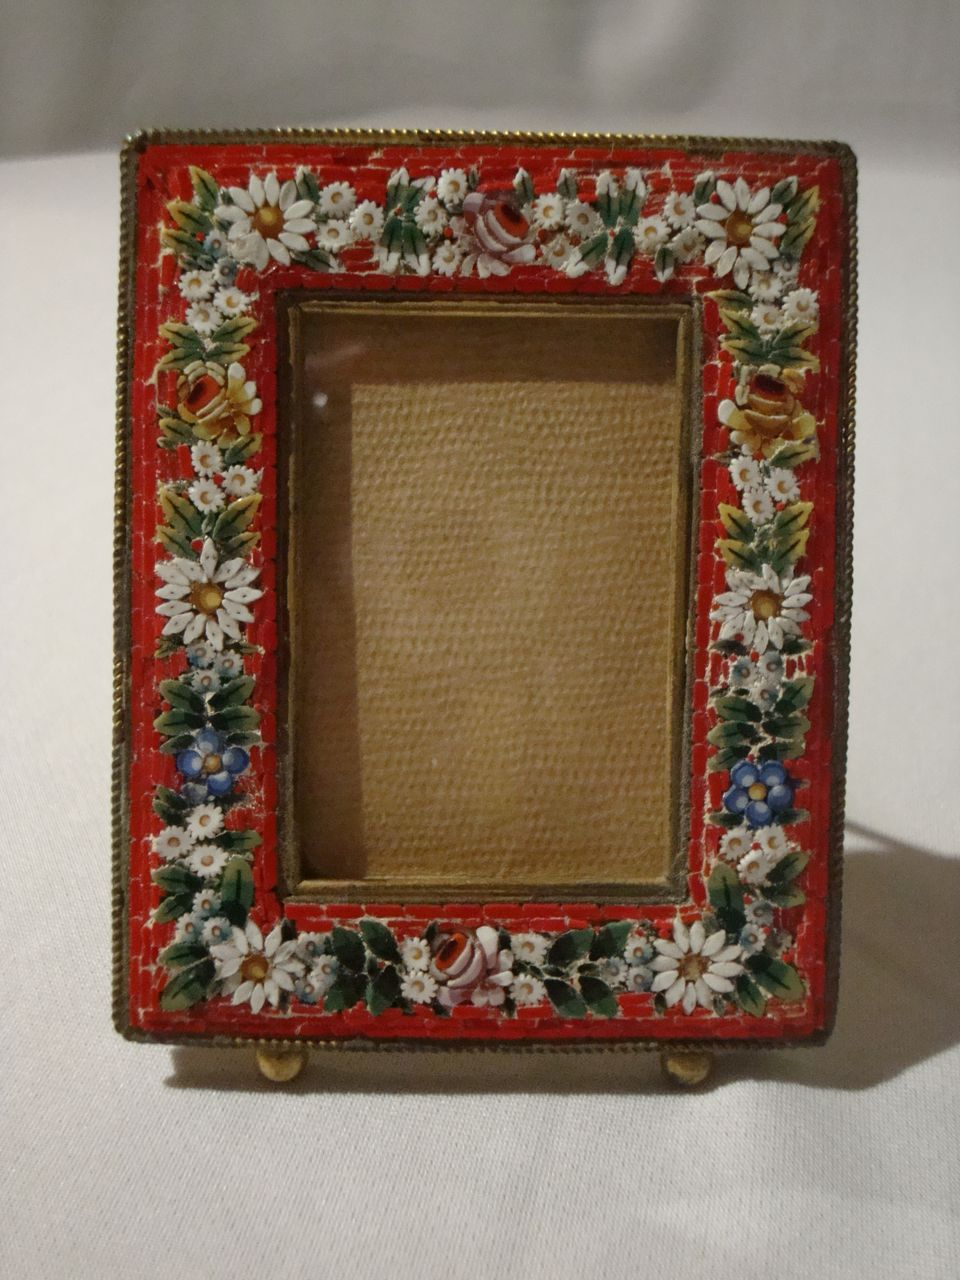 Mosaic Easel Back Picture Frame Floral Motif On Red From